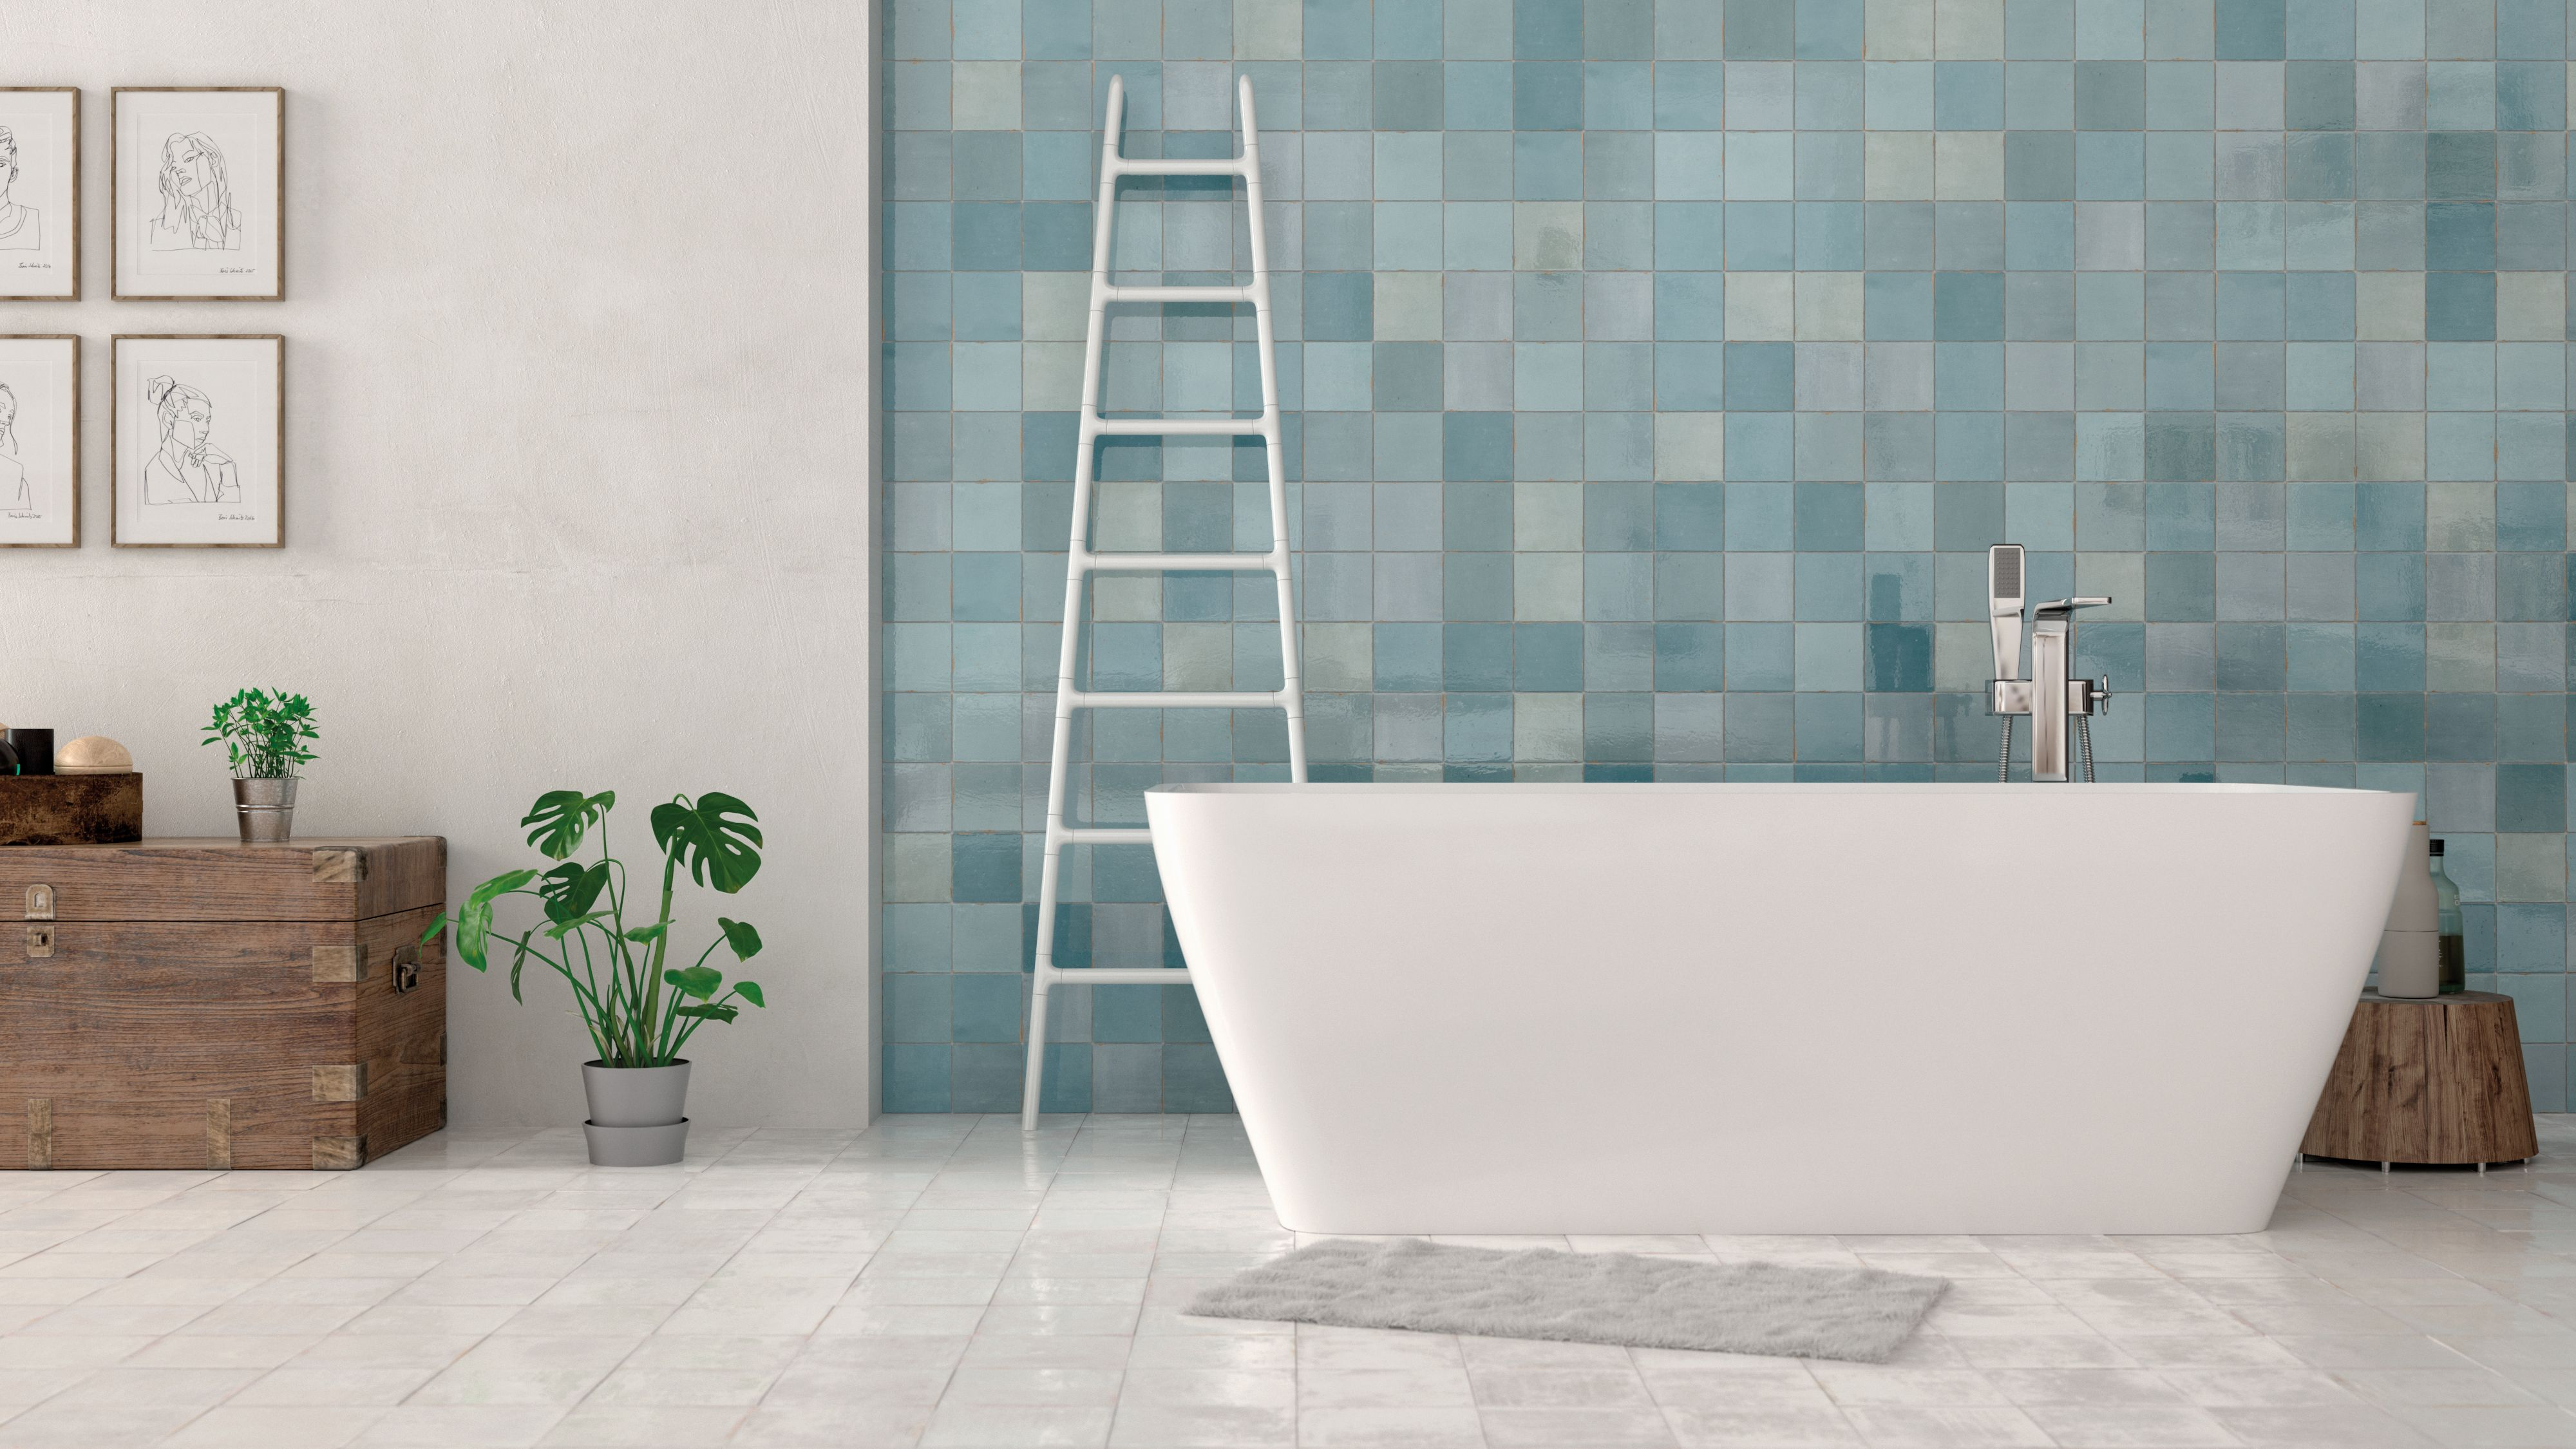 Nt18 005dt Boutique Zellige Turques Gloss Wall Tile 125 X 125mm Inspired By The Traditional Tile Making Methods Of Wall Tiles Aqua Tiles Ceramic Wall Tiles